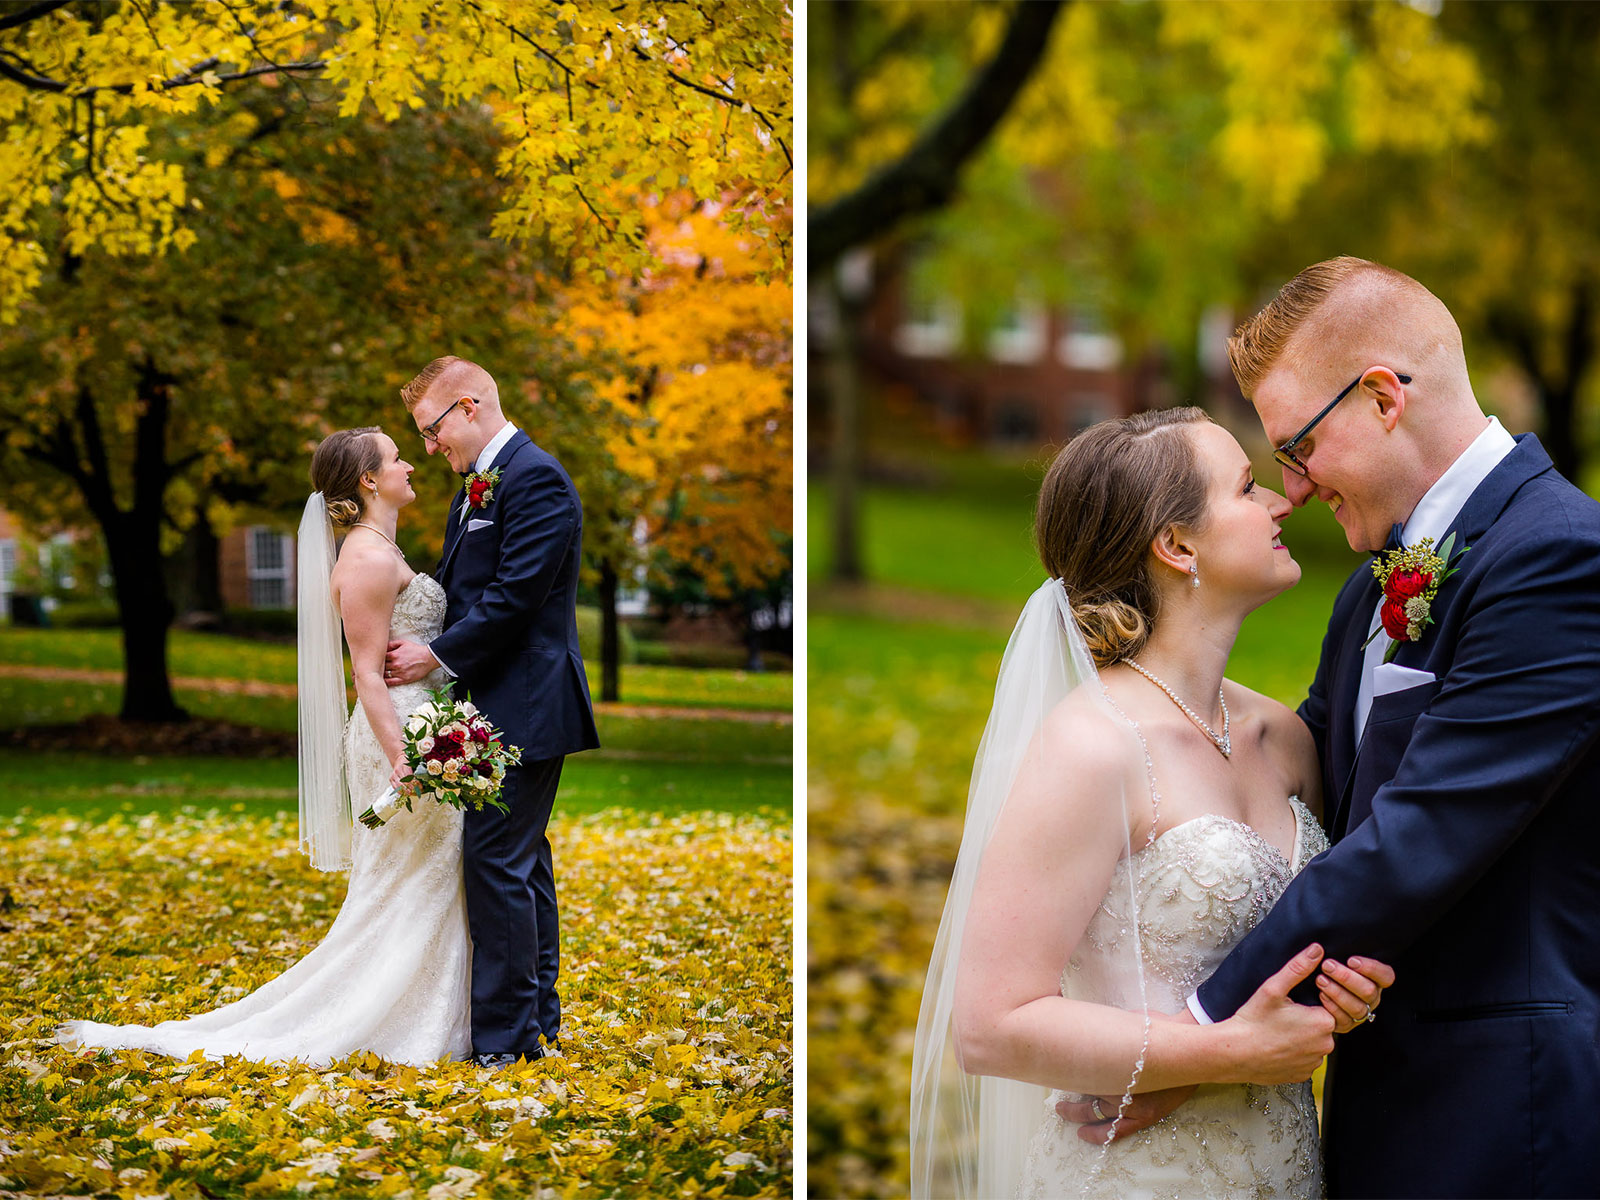 Eric_and_Christy_Photography_Blog_Wedding_Erica_Mike-51-52